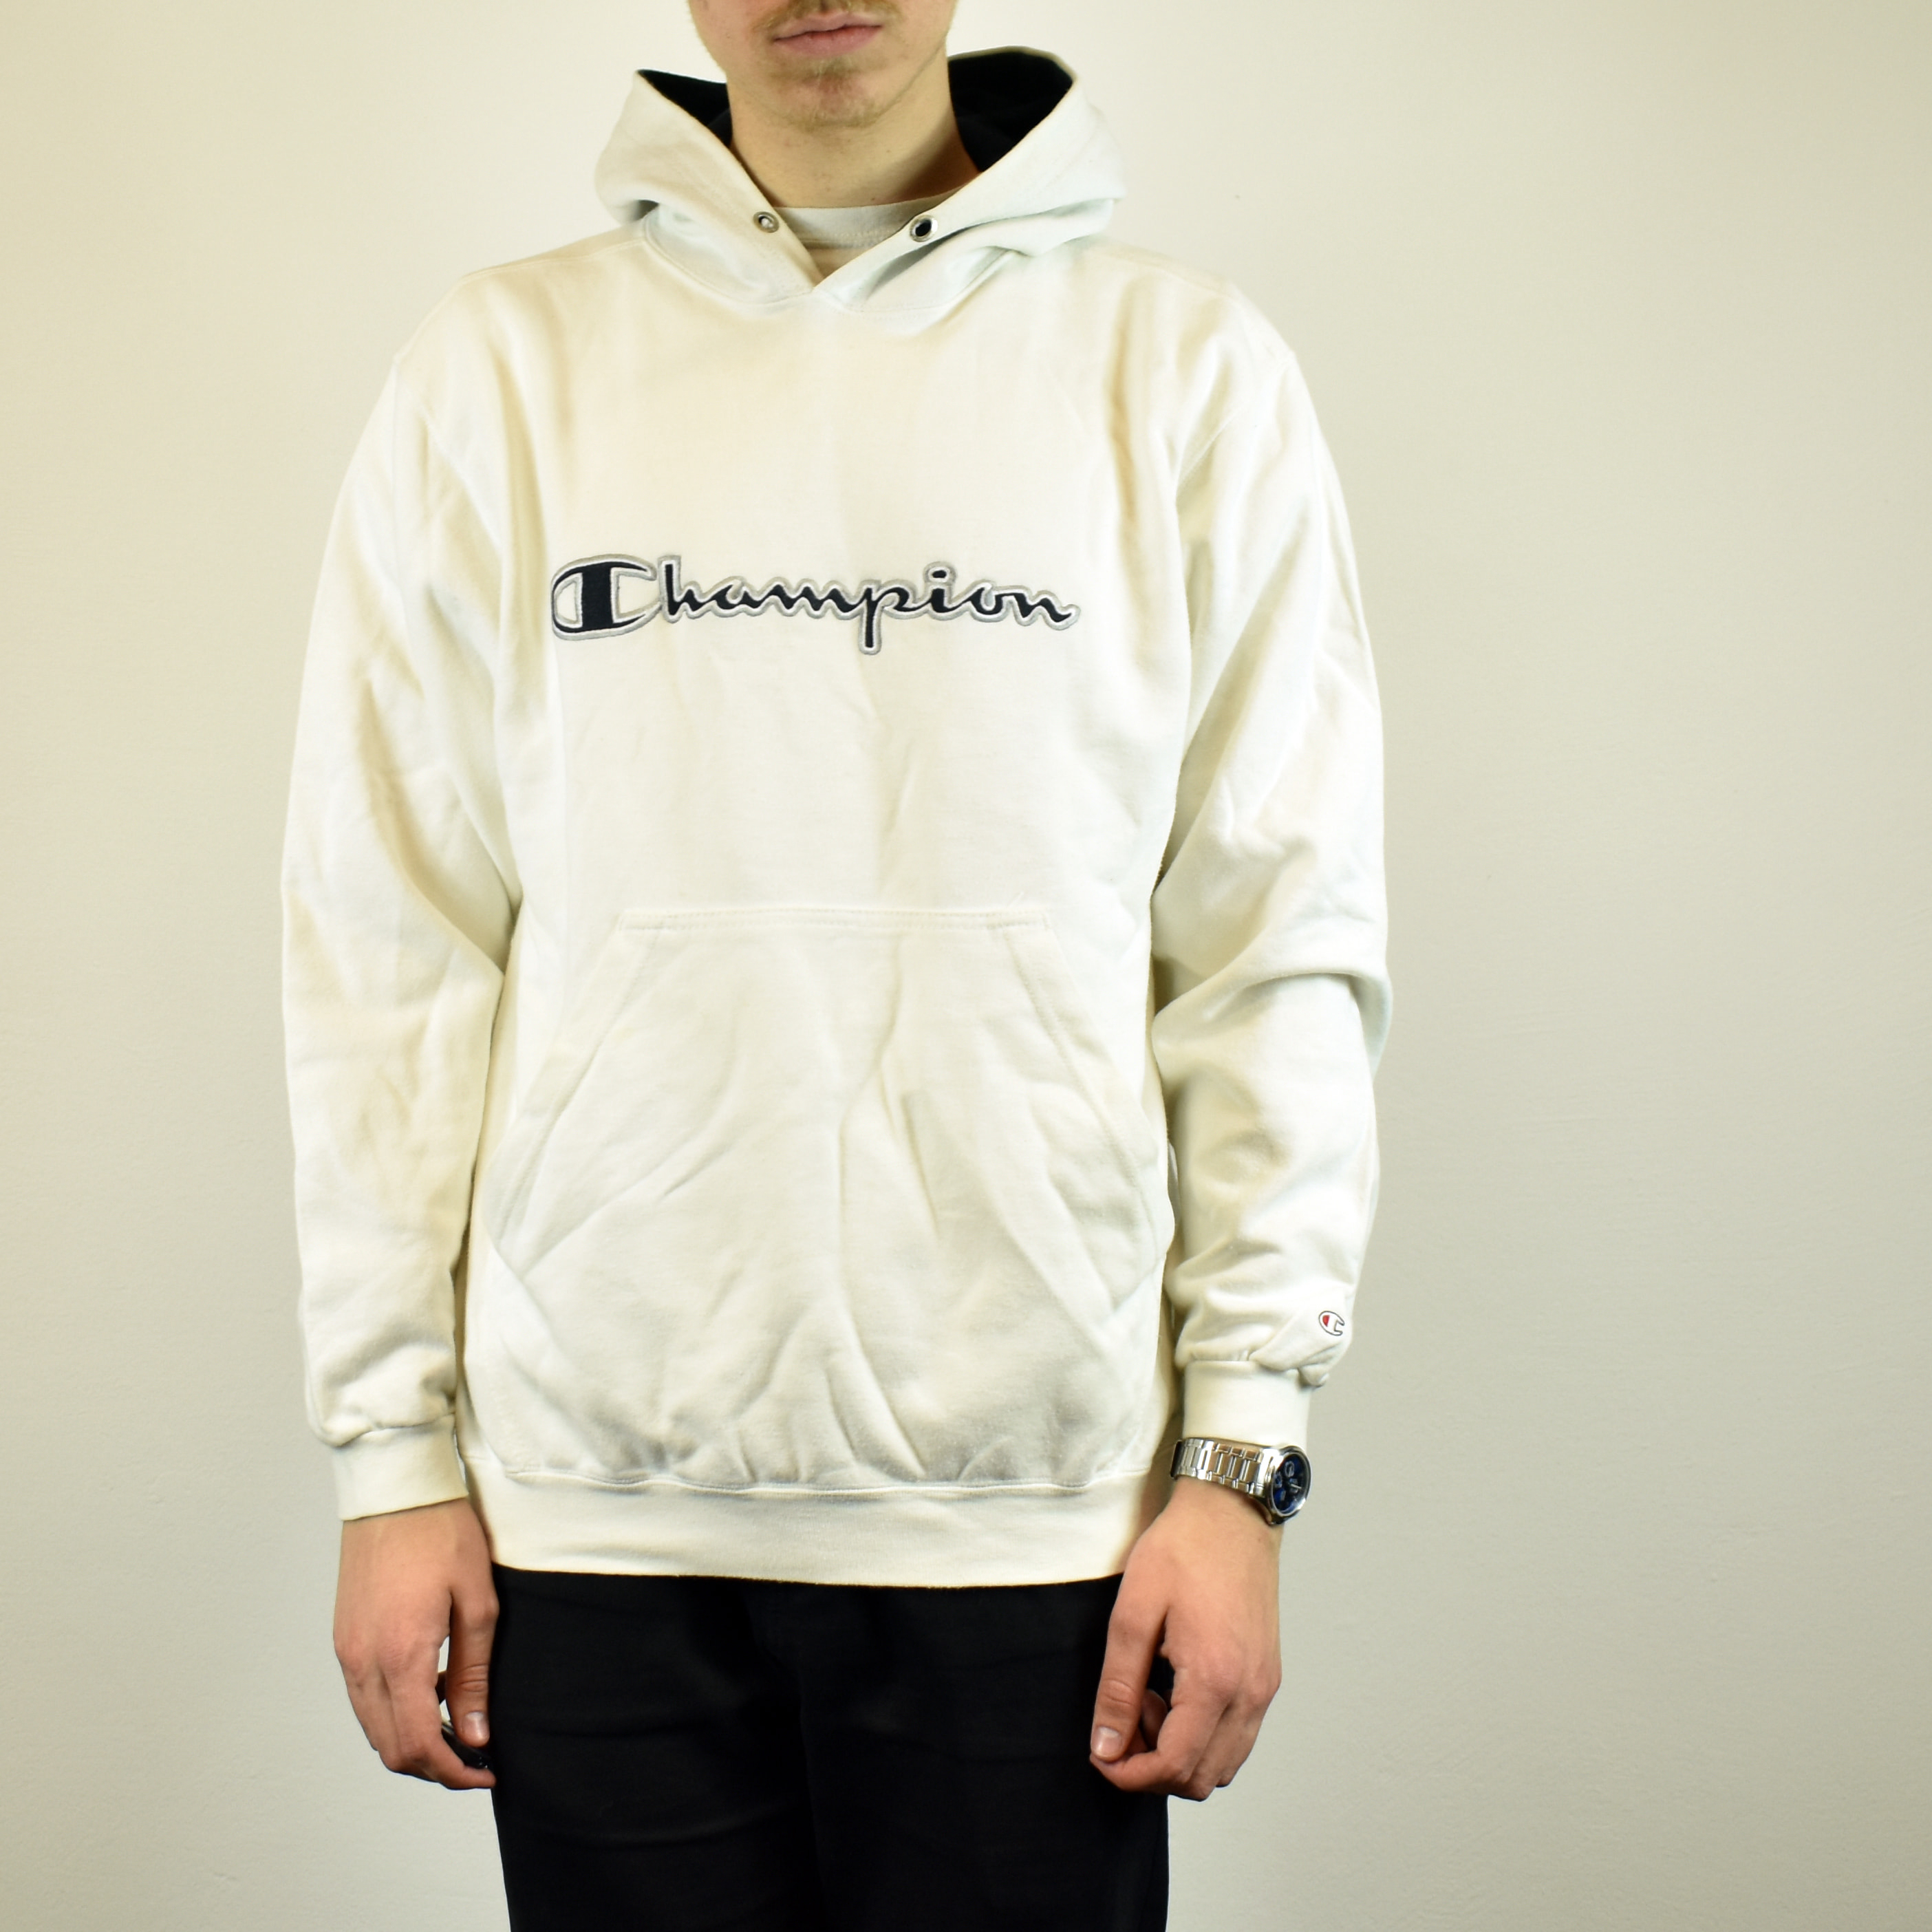 White Features L Champion Unisex Spellout Size Hoodie In Vintage Embroidered u1JFKTlc3